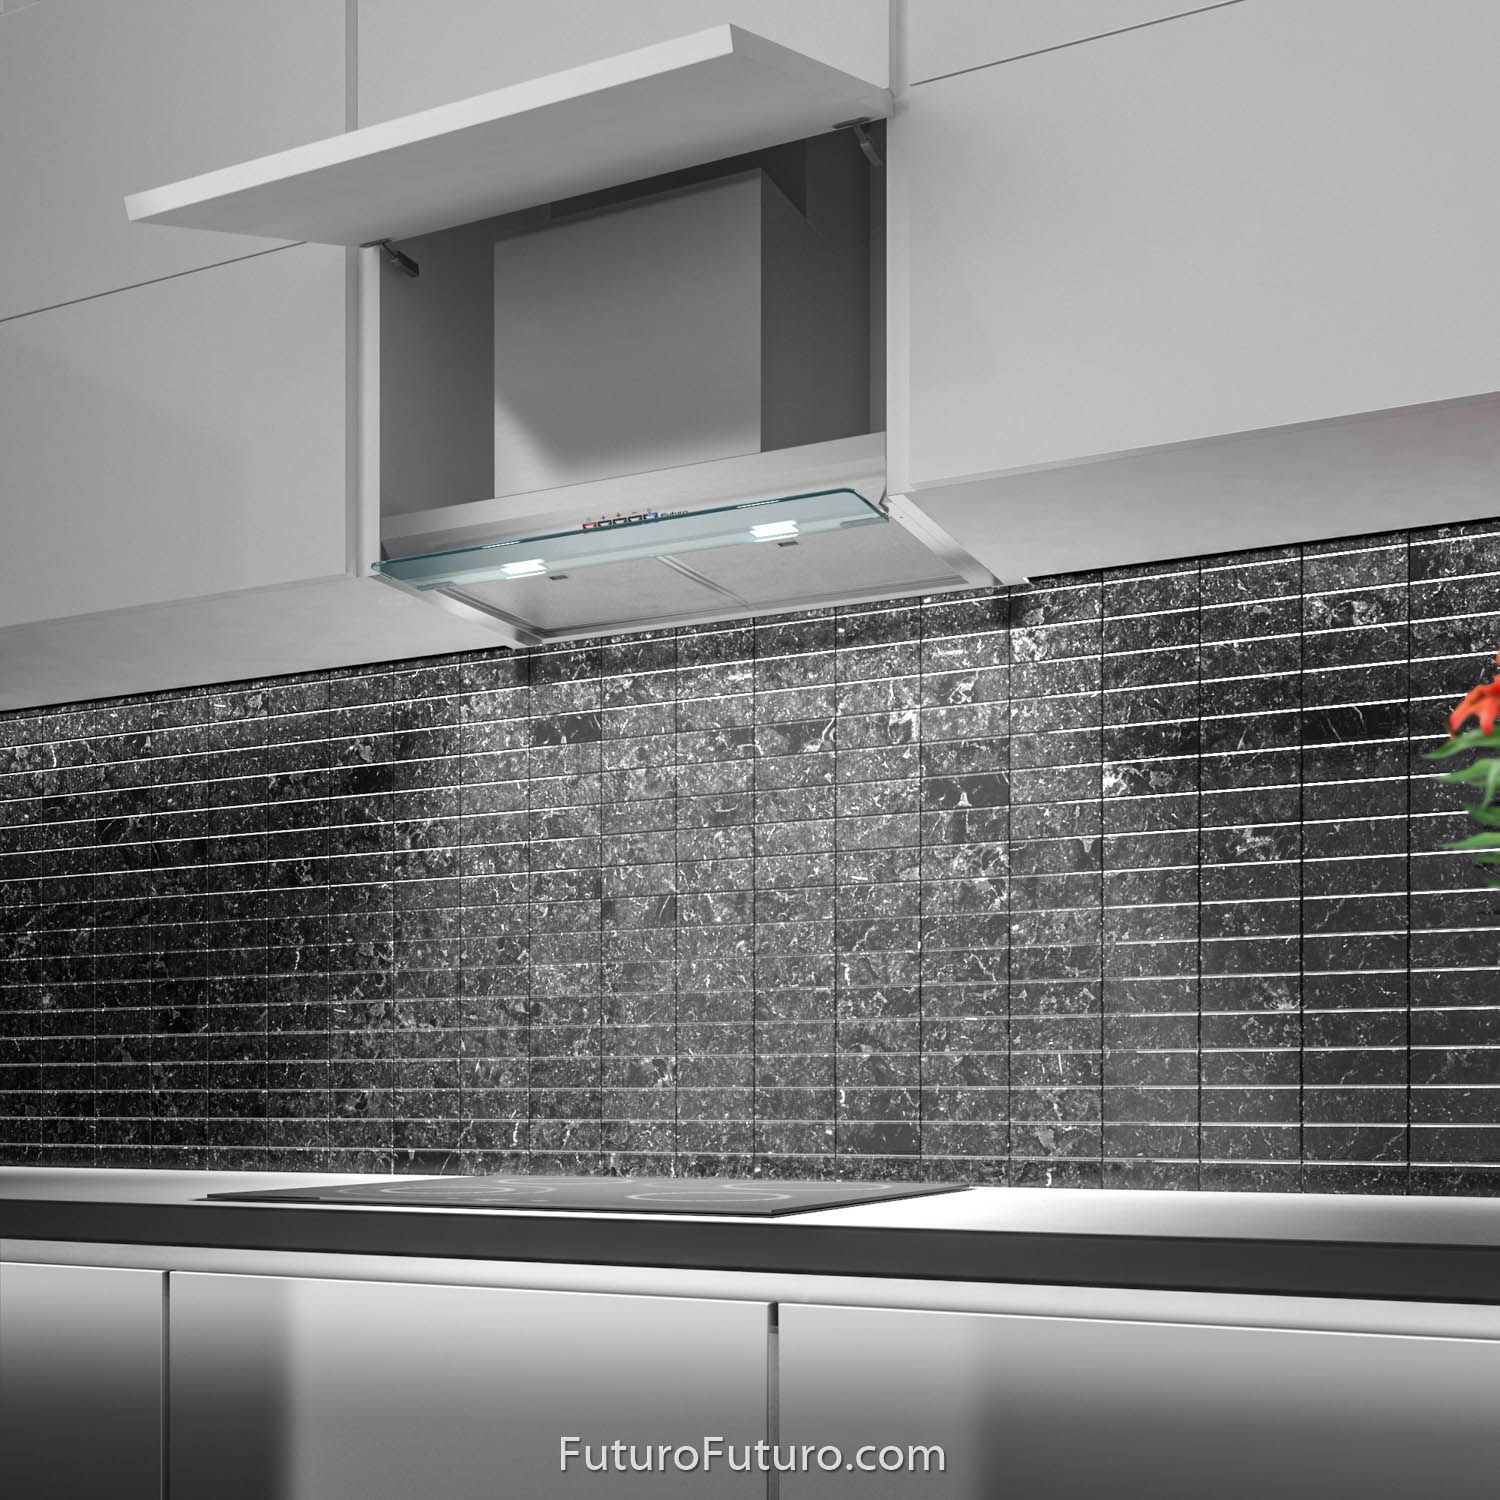 24 Shade Wall The Shade Series Range Hoods By Futuro Futuro Are Designed For Installation Inside A Cabinet Creat With Images Range Hood Kitchen Ventilation Range Hoods